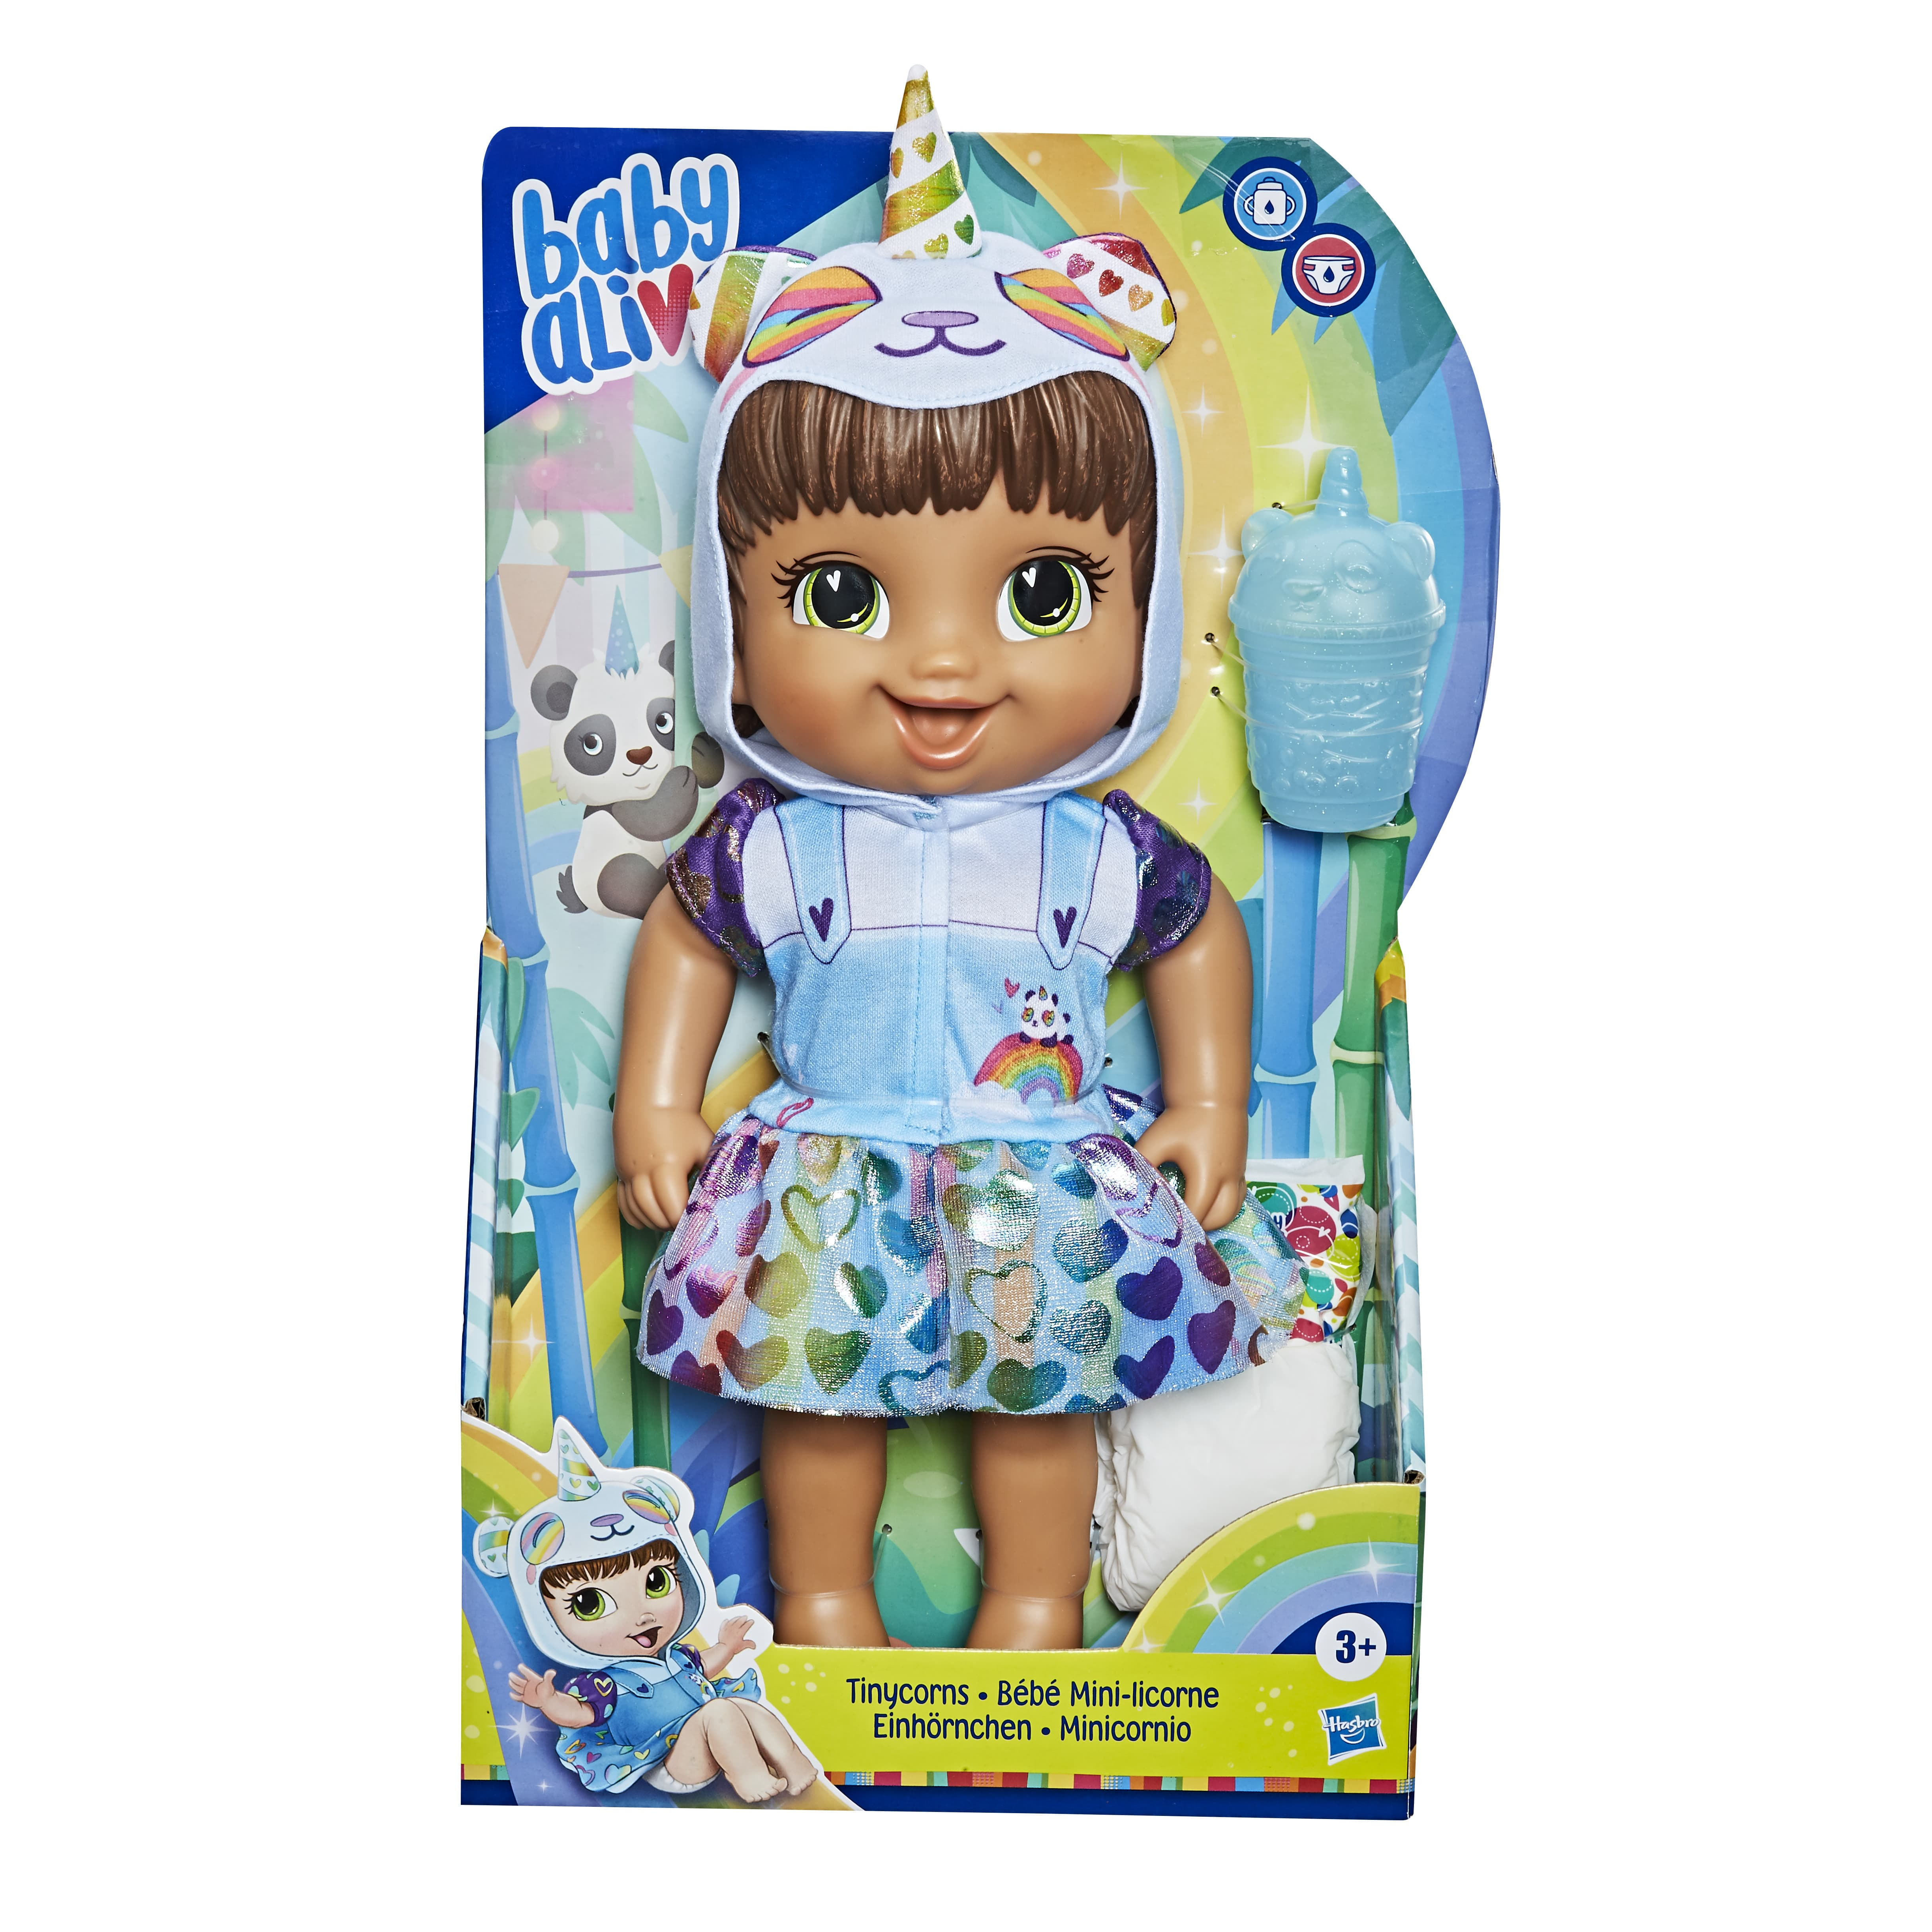 E9166 BABY ALIVE TINYCORN 3 In Pack